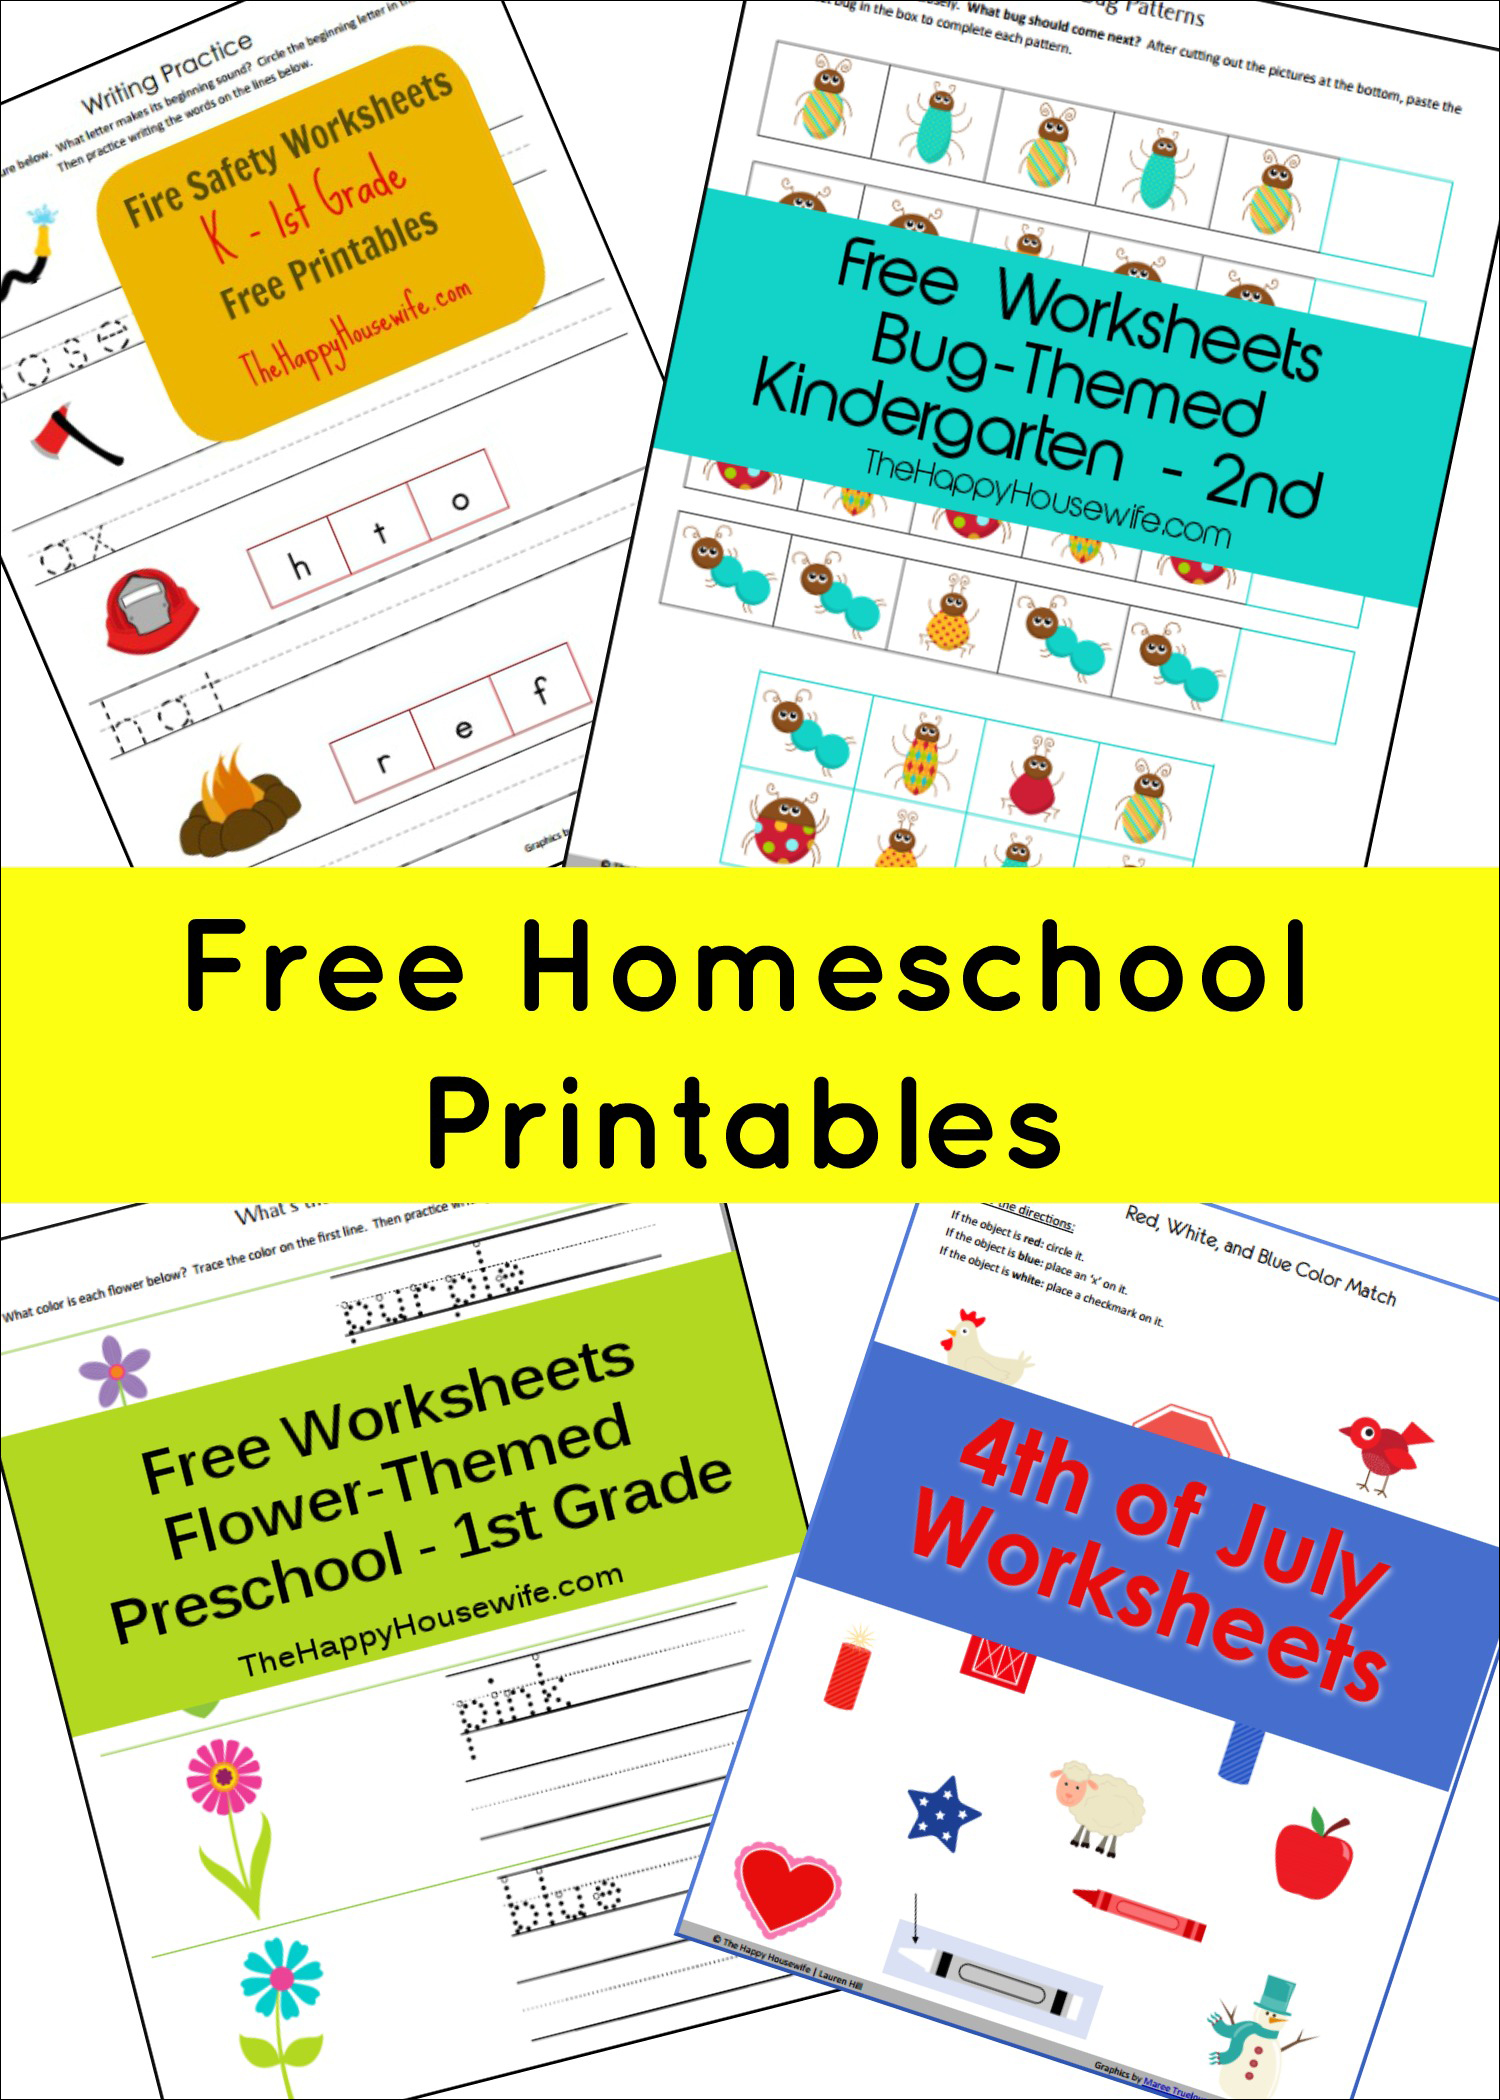 Homeschool Free Printables - The Happy Housewife™ :: Home Schooling